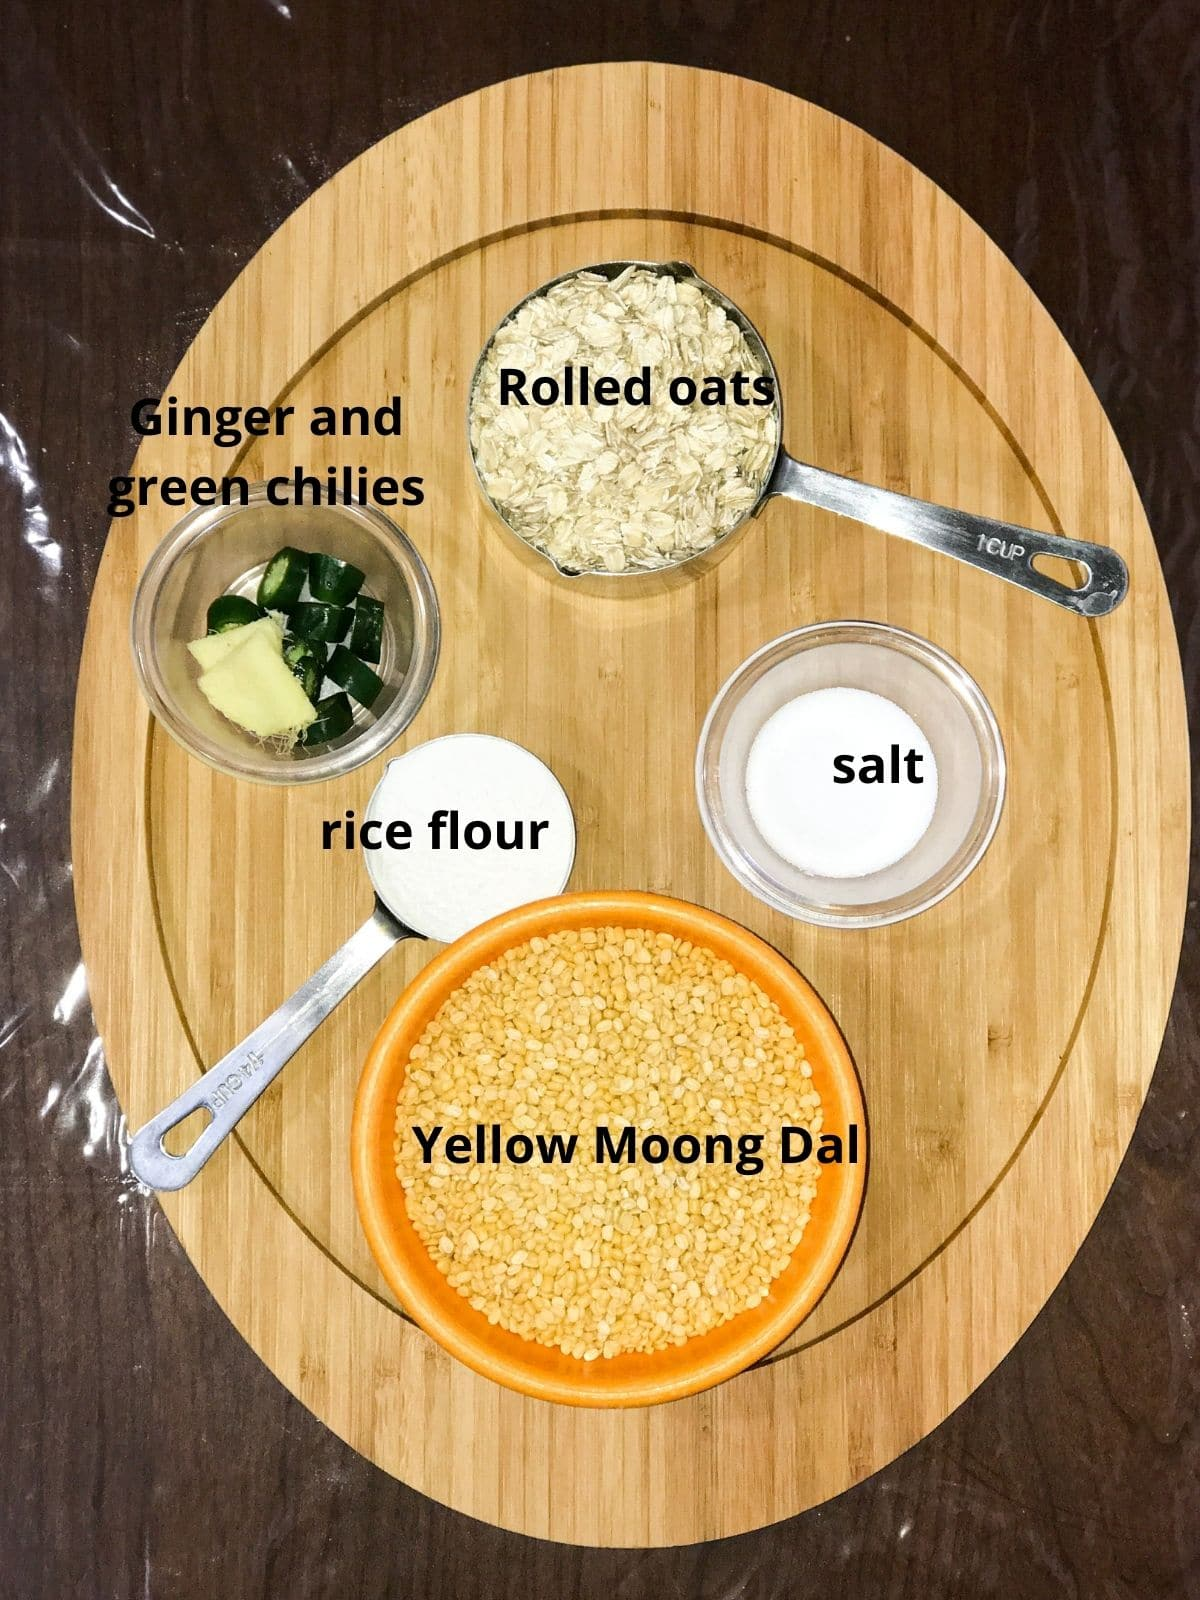 Bowls of ingredients like moong dal, oats and ginger are placed on the serving tray